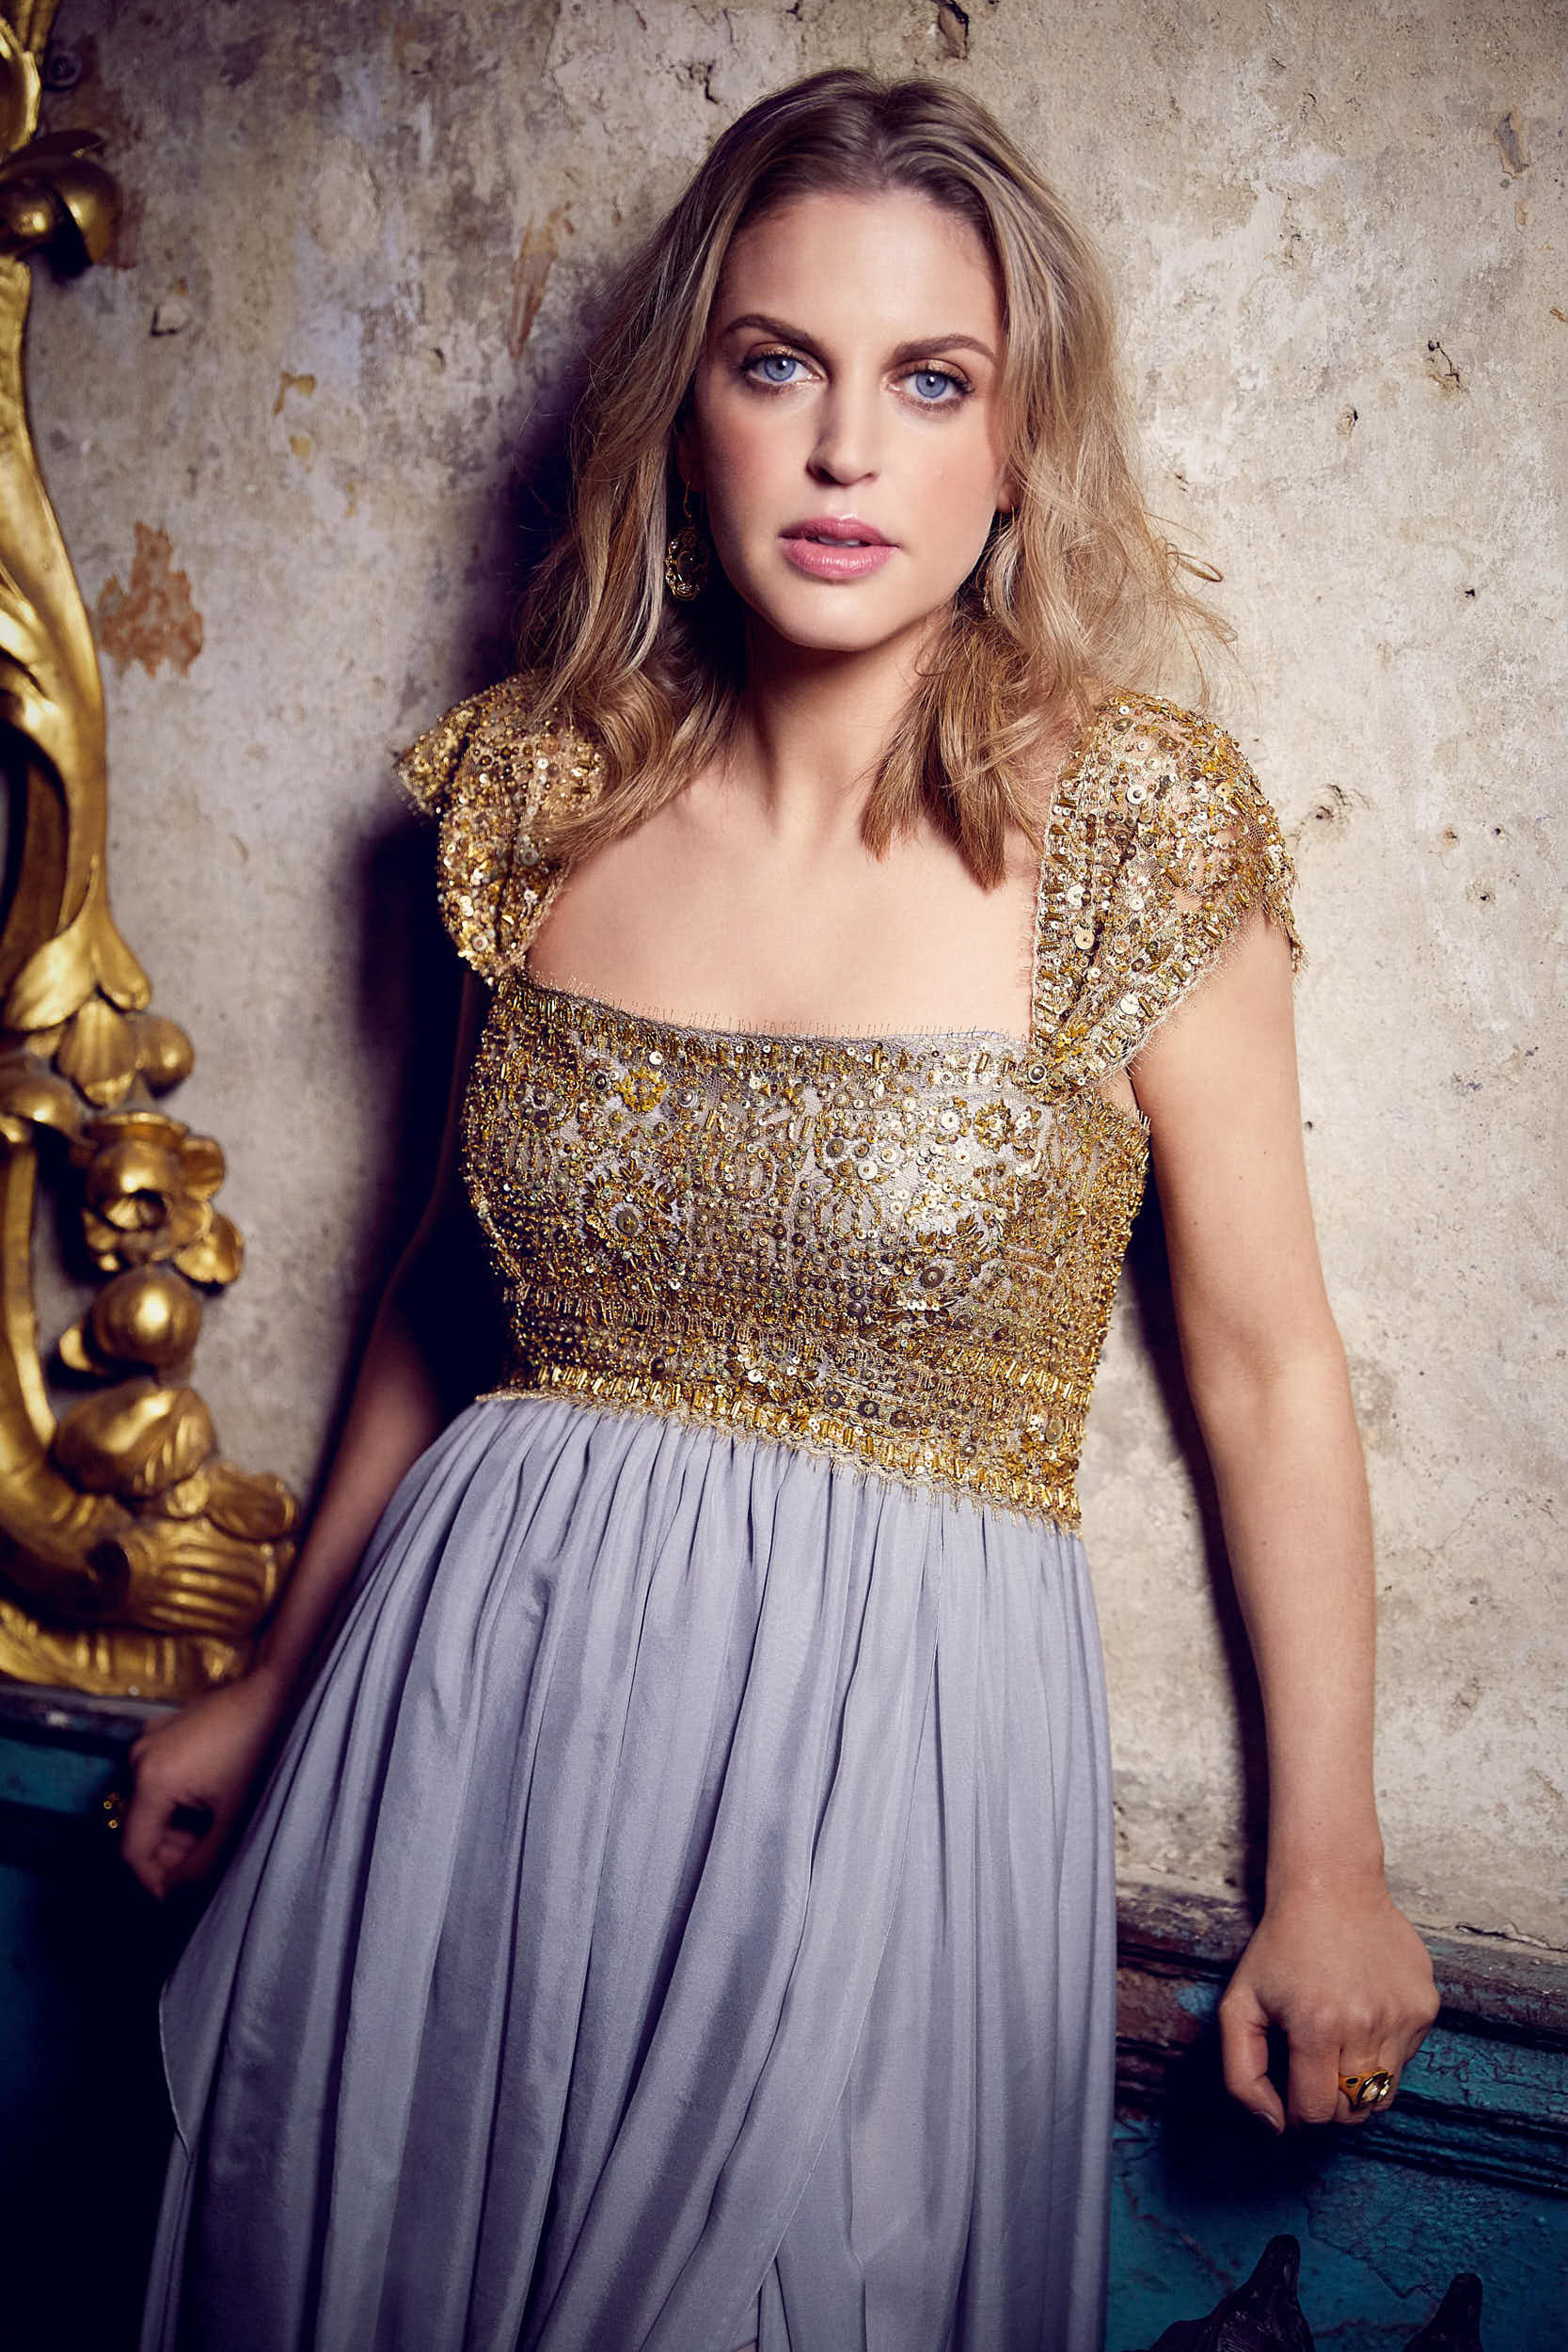 Amy Huberman - Actress